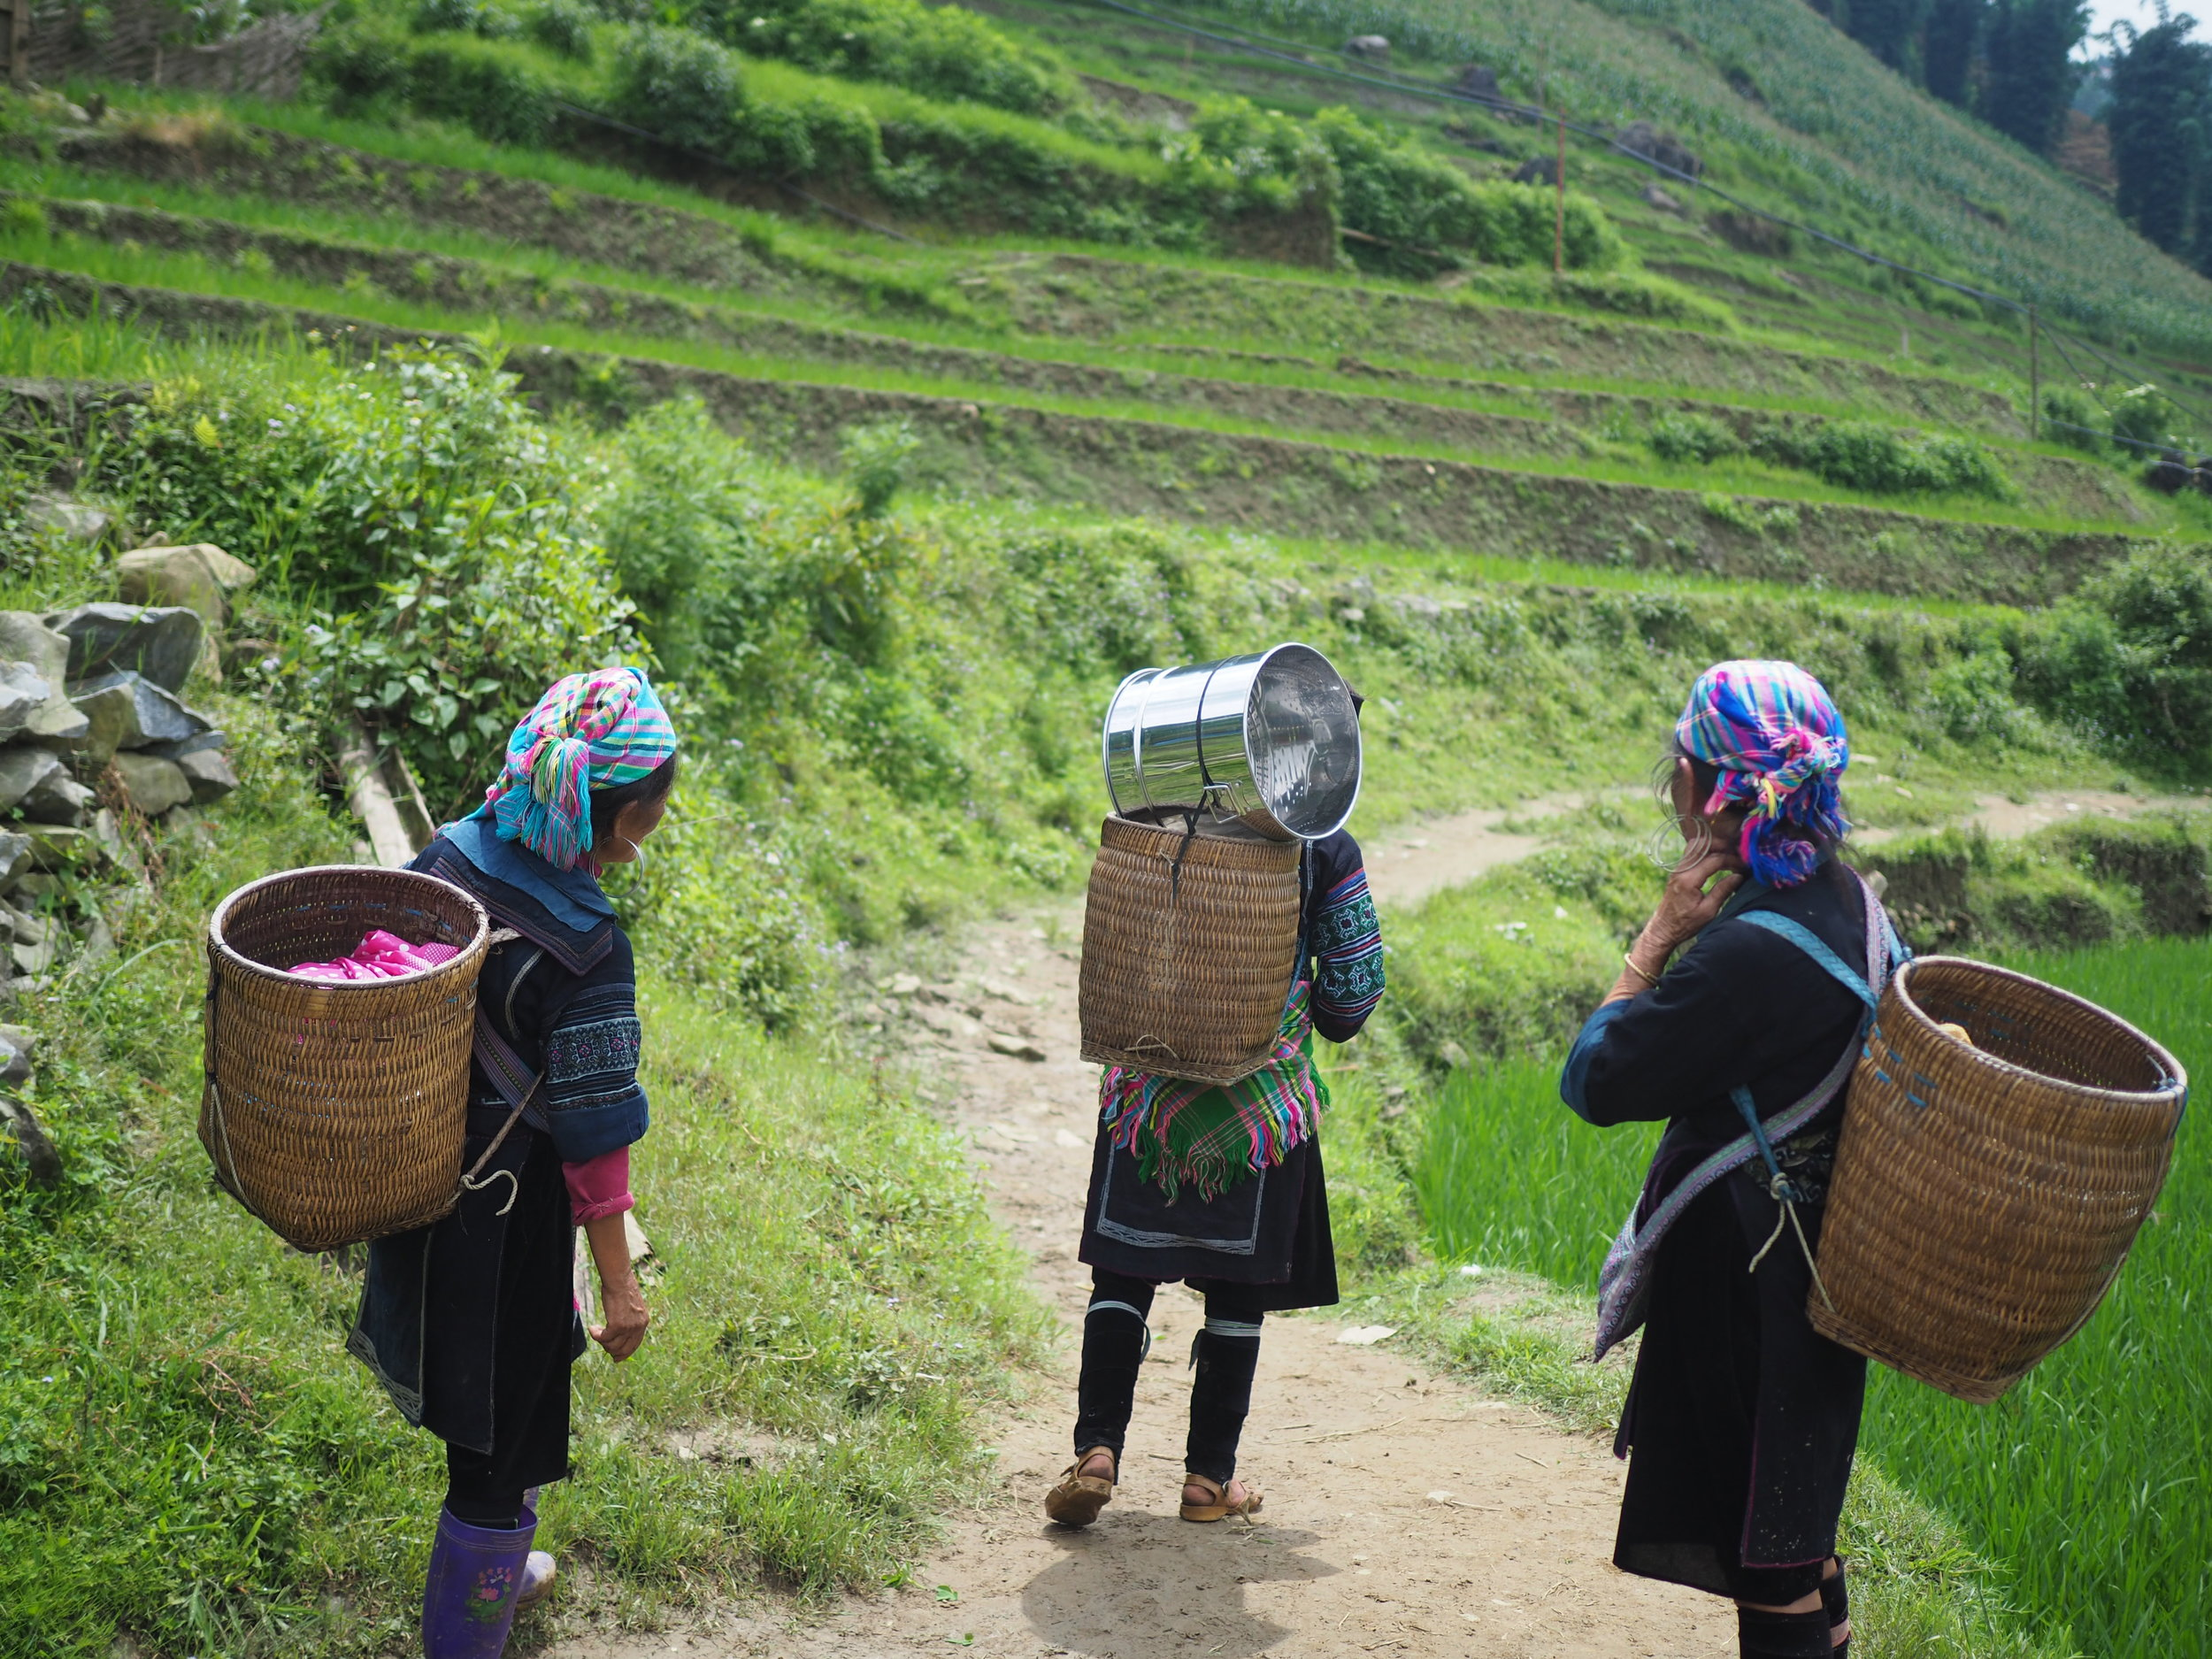 Focus on women and girls to fight global poverty